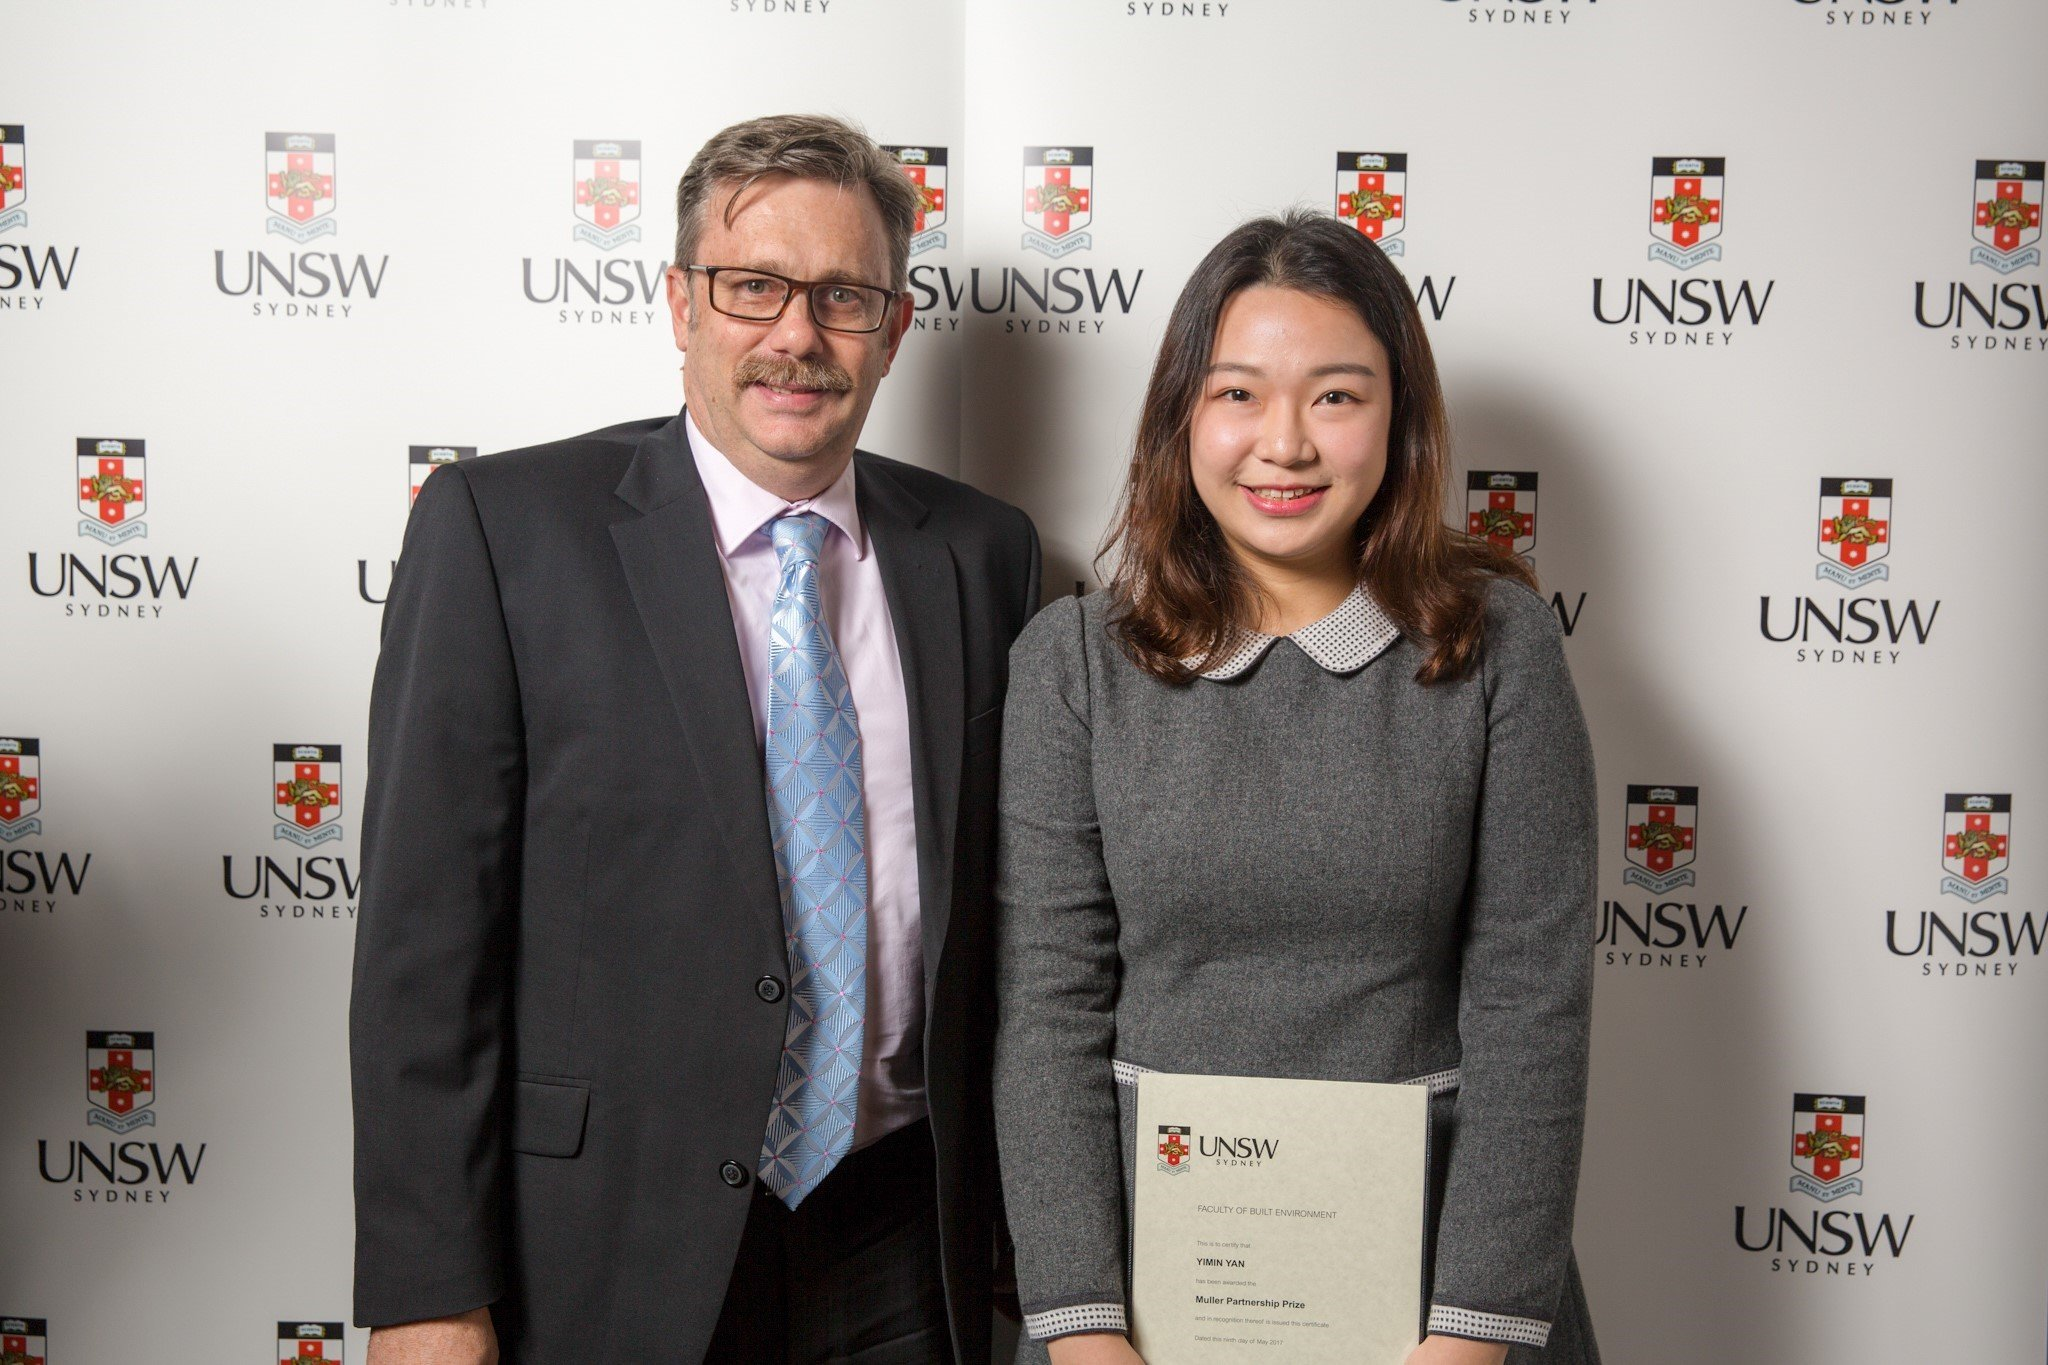 We would like to congratulate Yimman Yan on receiving the UNSW Muller Partnership prize for the 'Best QS Student' in 3rd year of the UNSW Construction Management and Property degree.